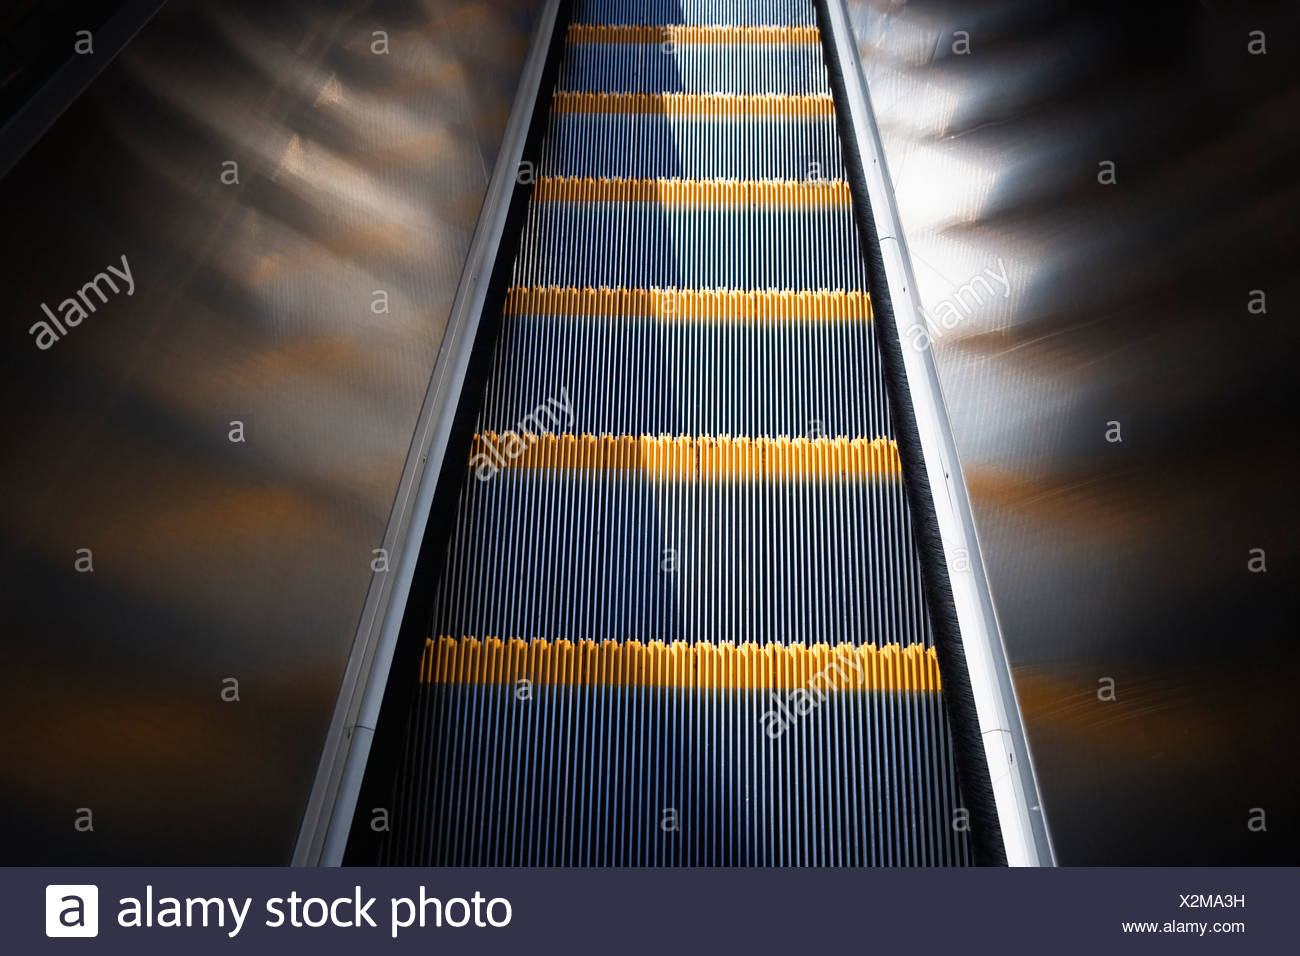 Close up, looking down moving escalator. - Stock Image